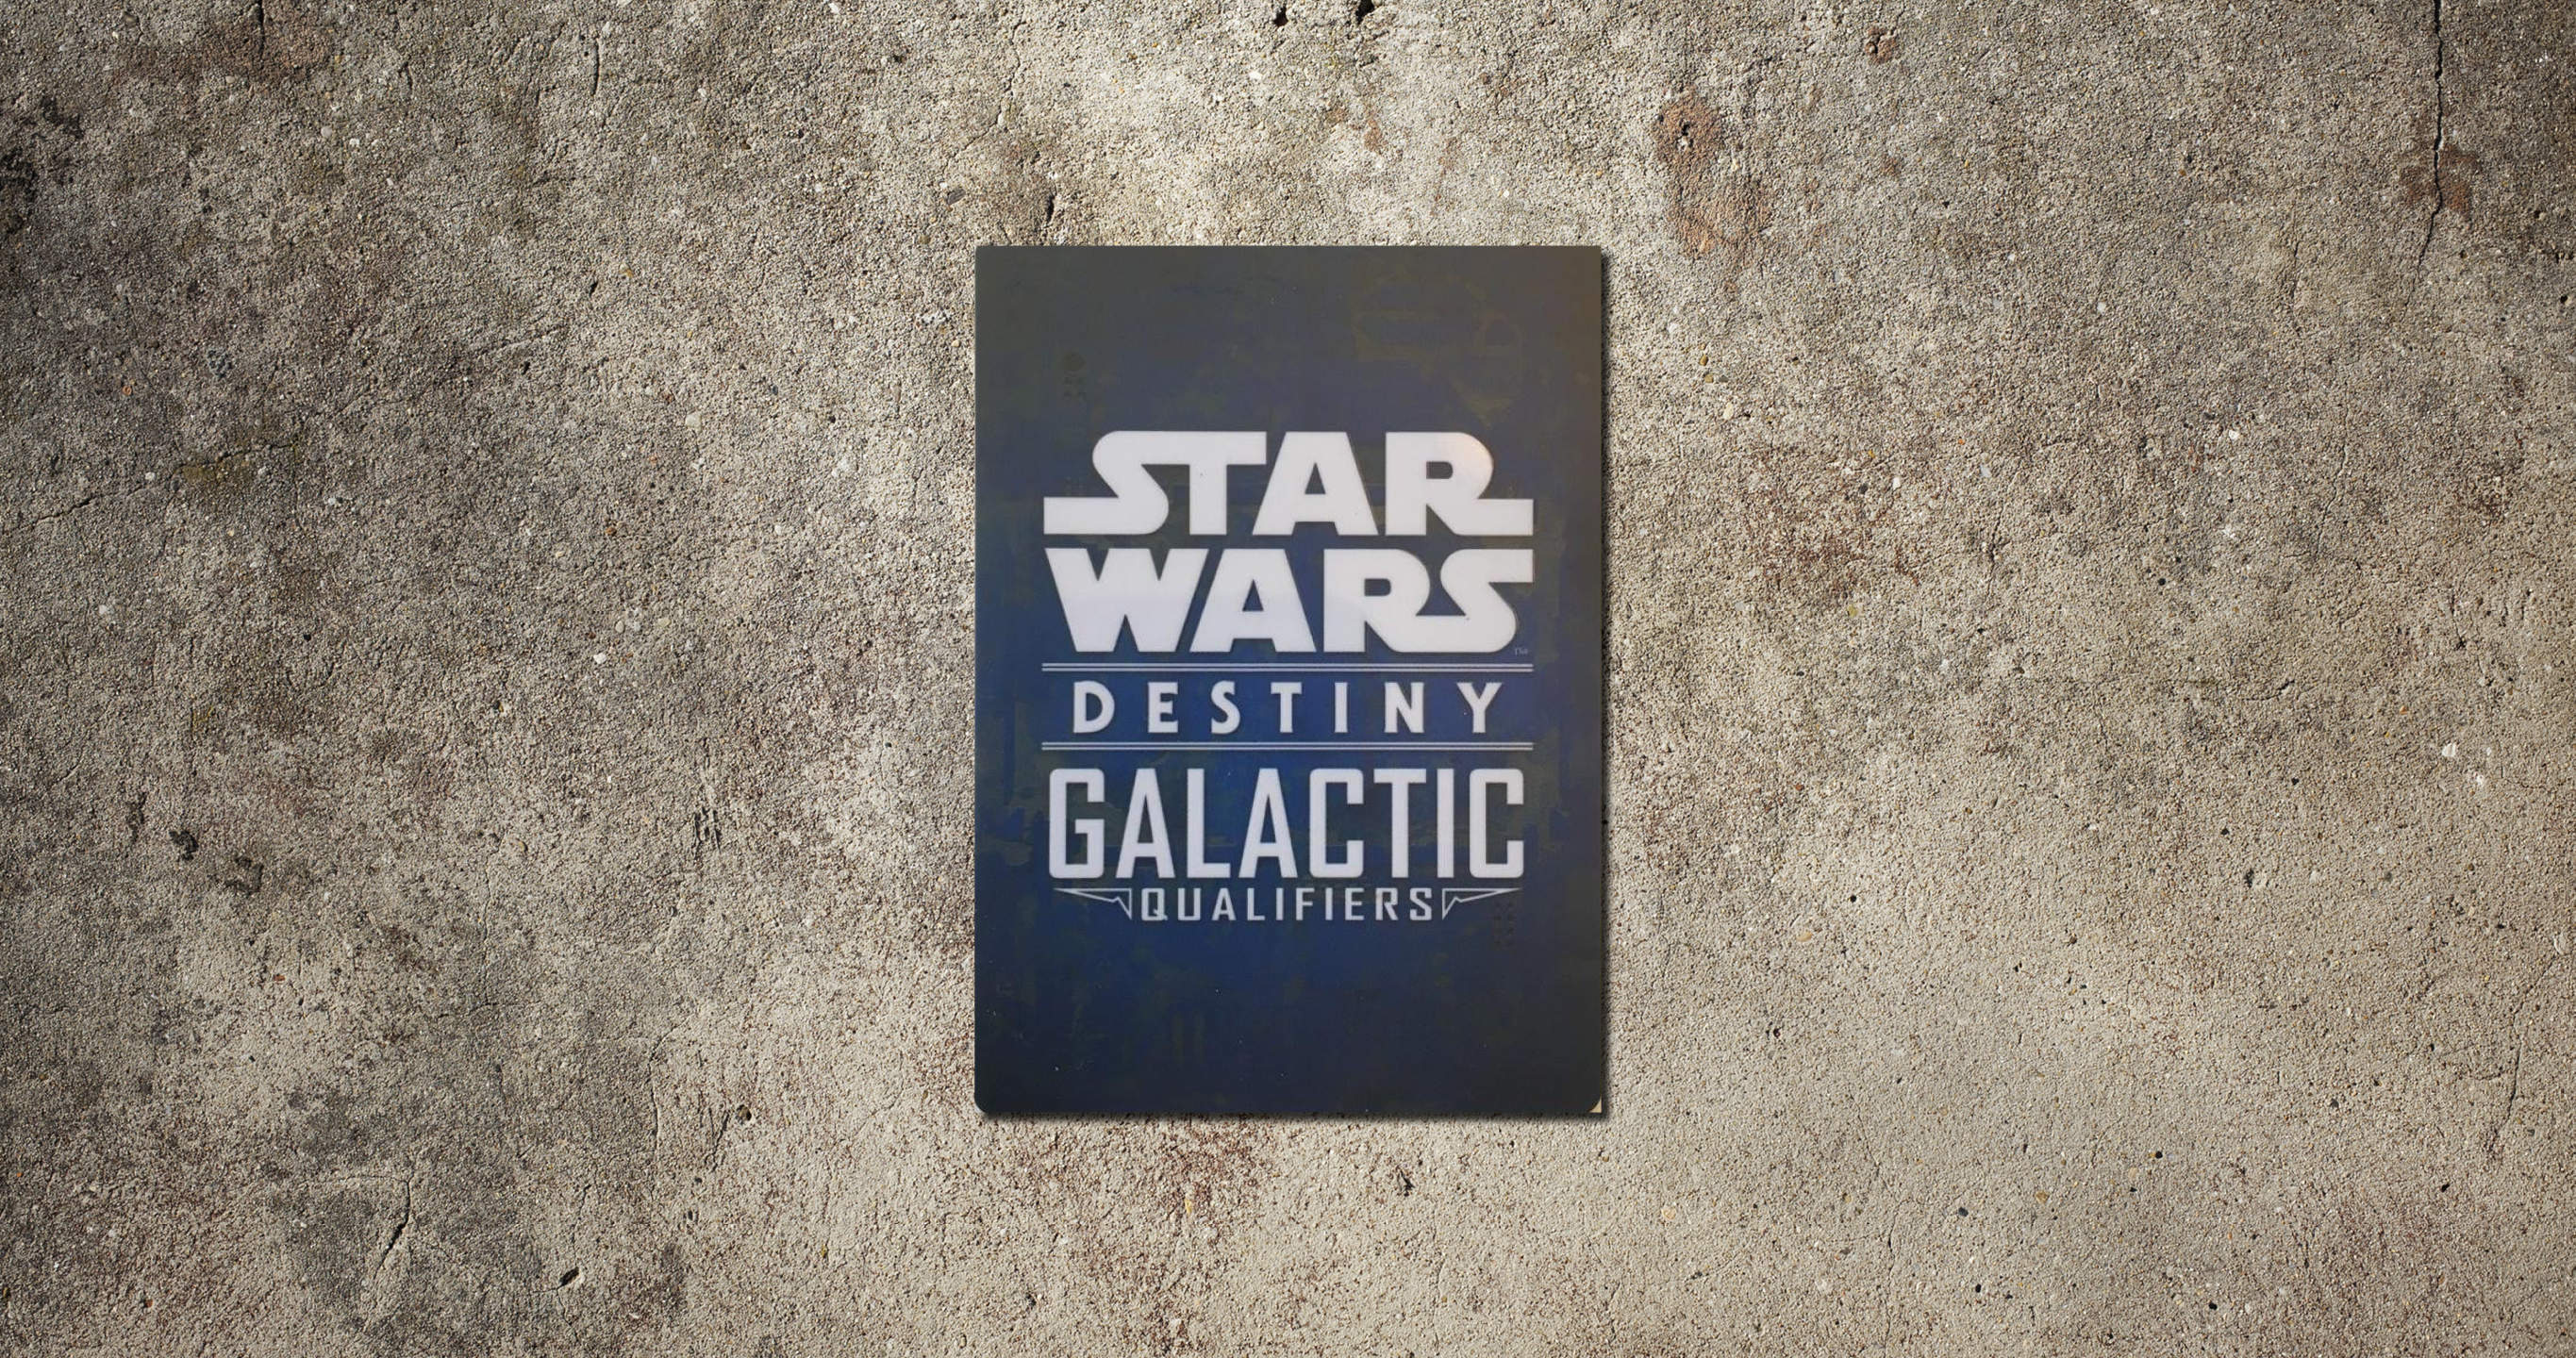 Why I'm Psyched About Galactic Qualifiers!